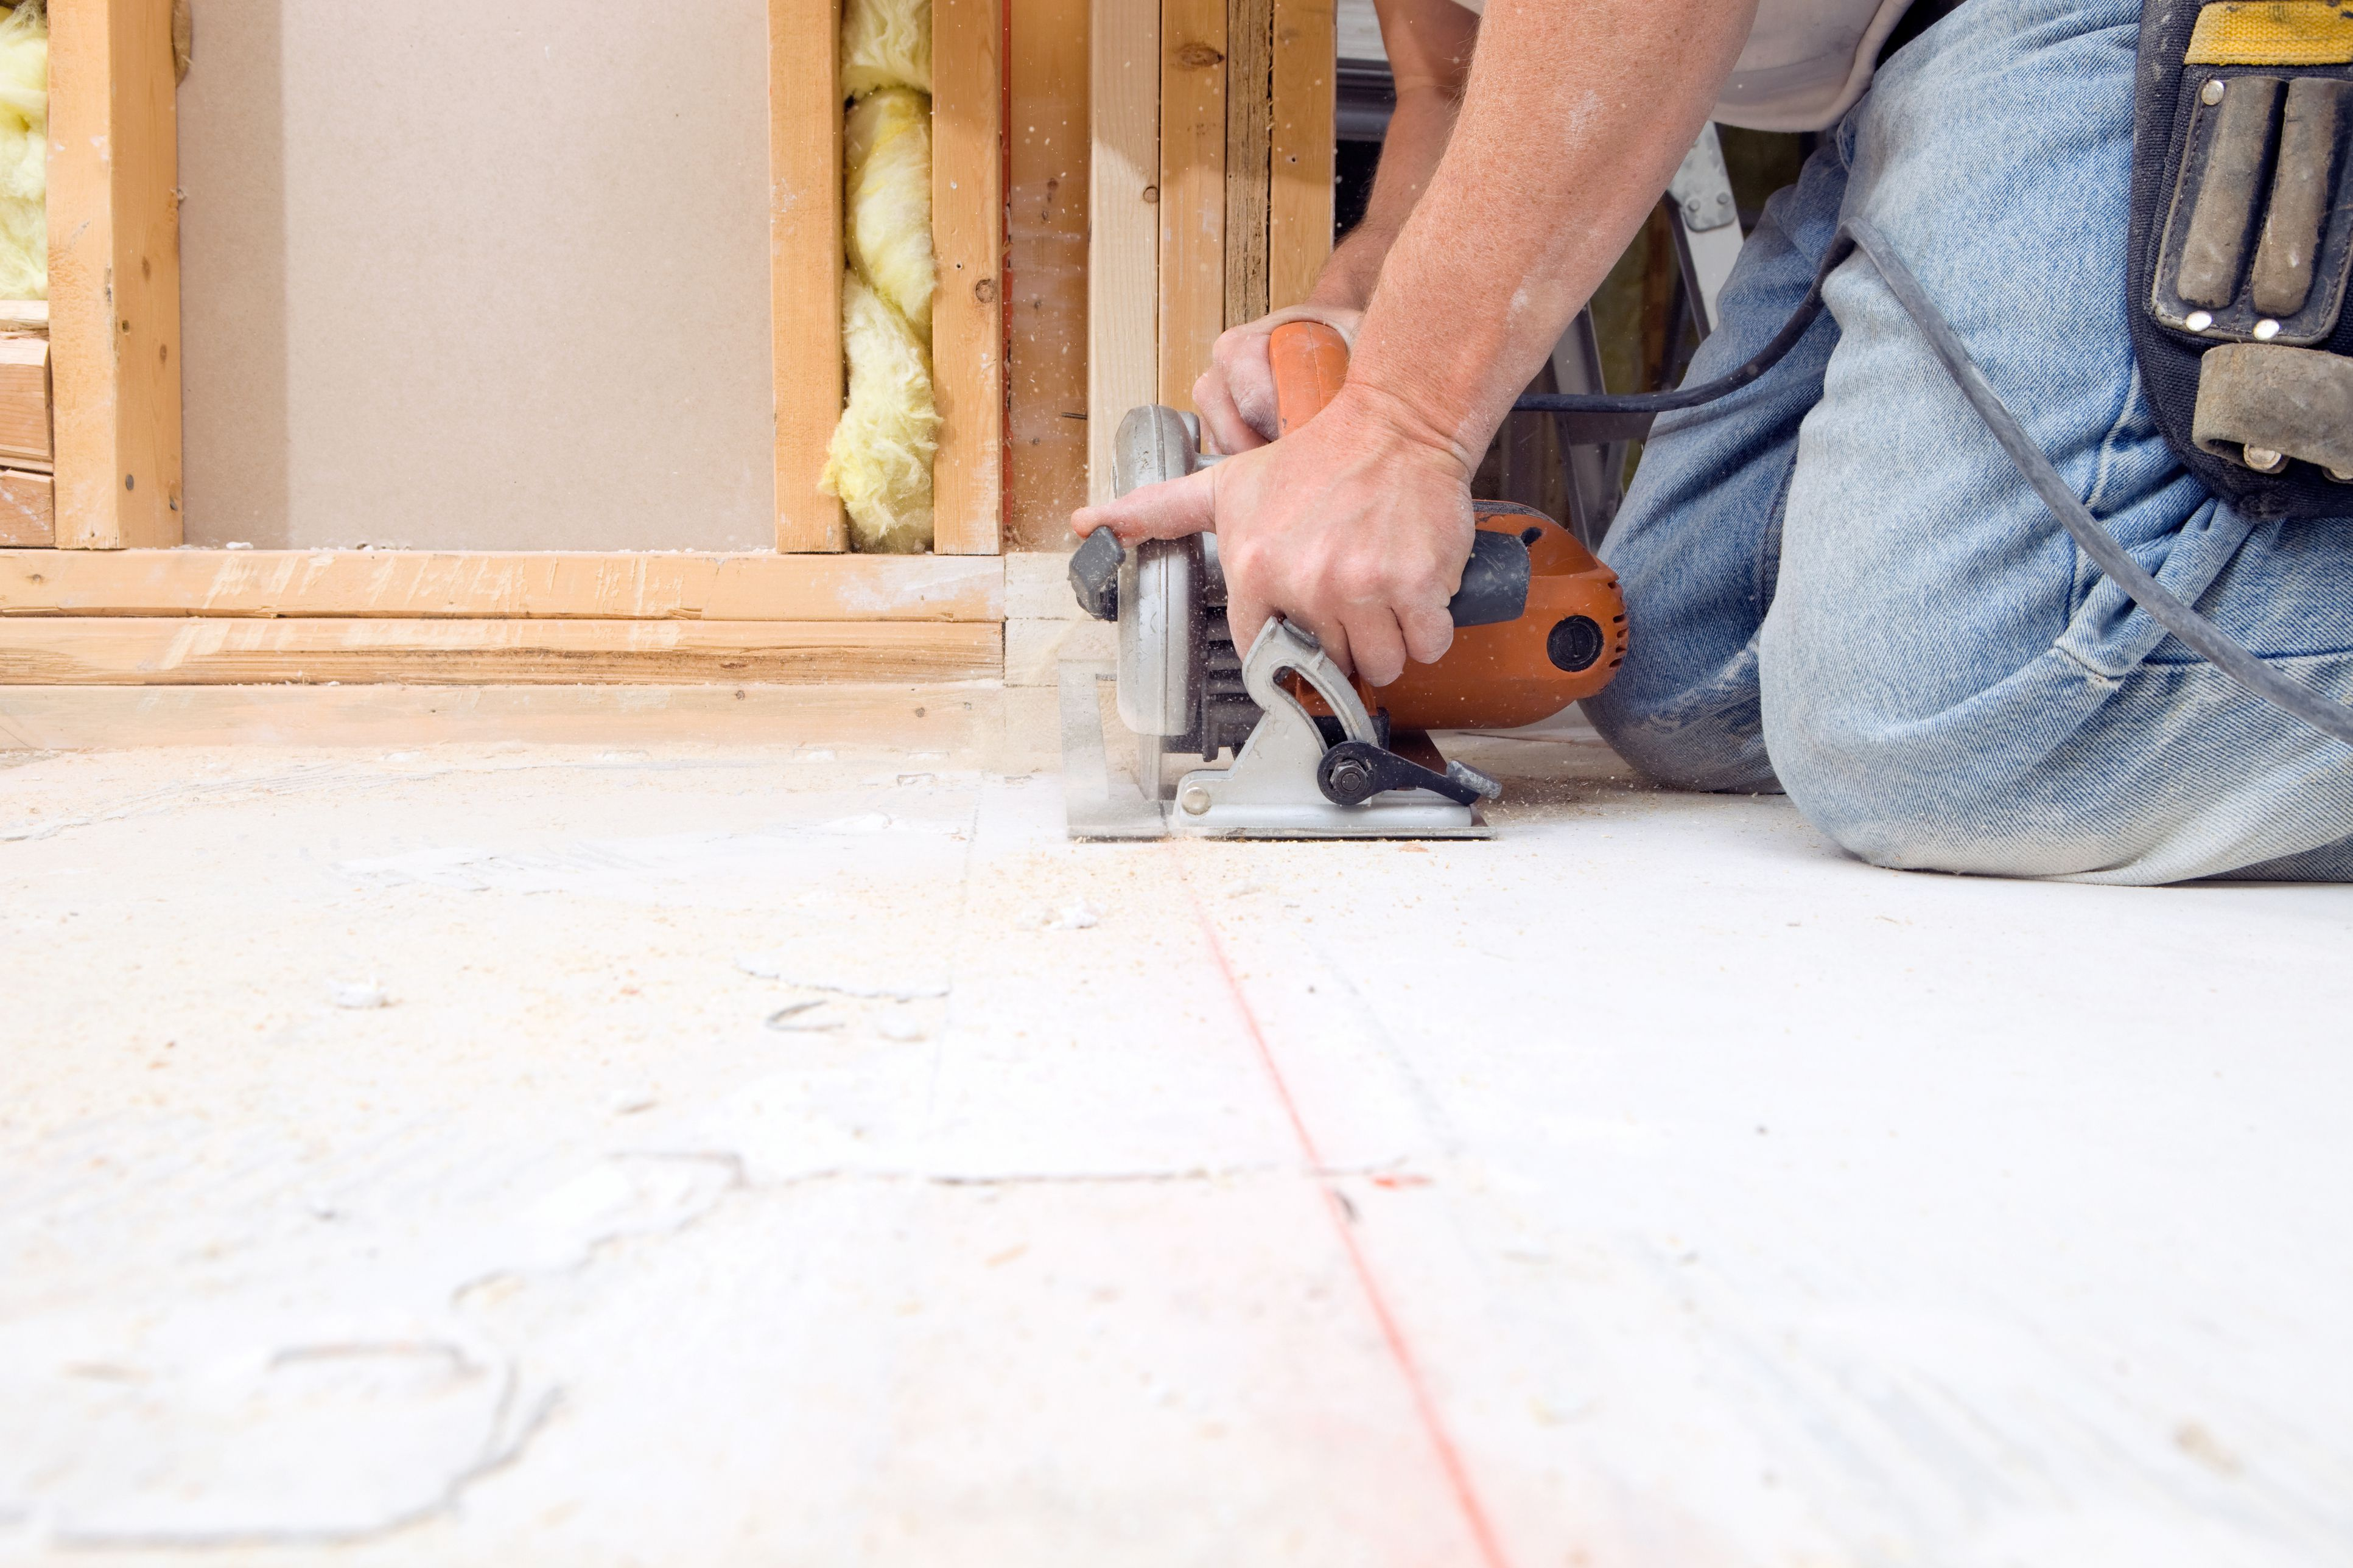 Subfloor, Underlayment, Joists - Guide to Floor Layers